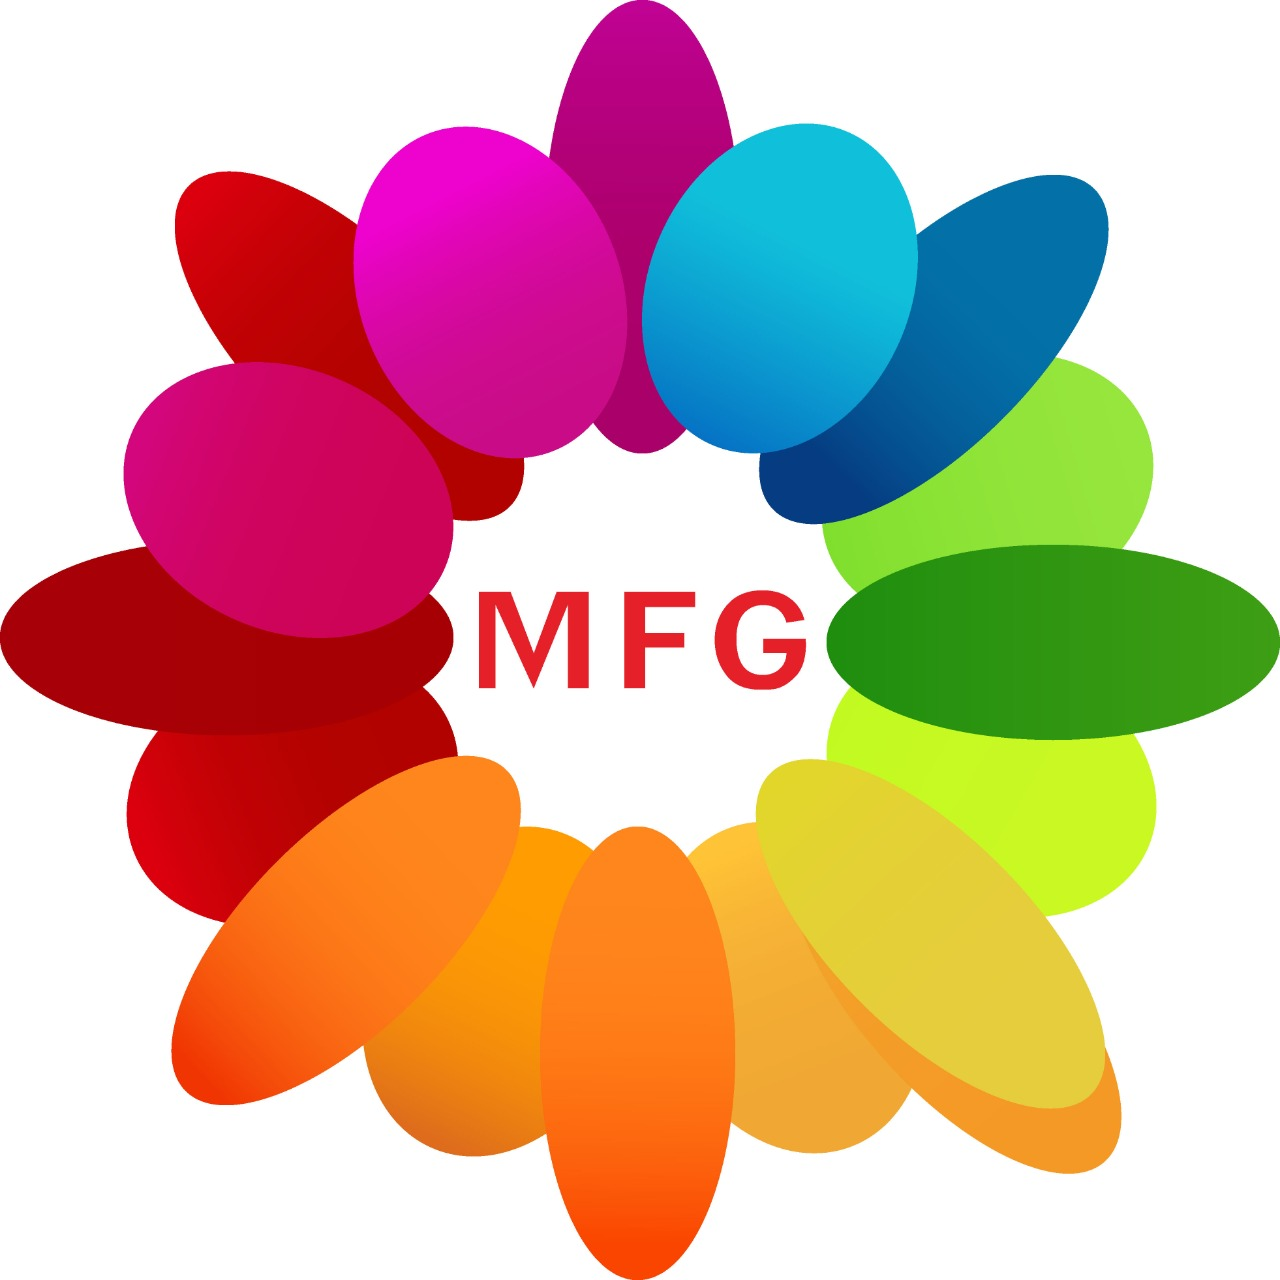 1 Kg Chocolate Fantasy Cake With Bottle Of Red Wine